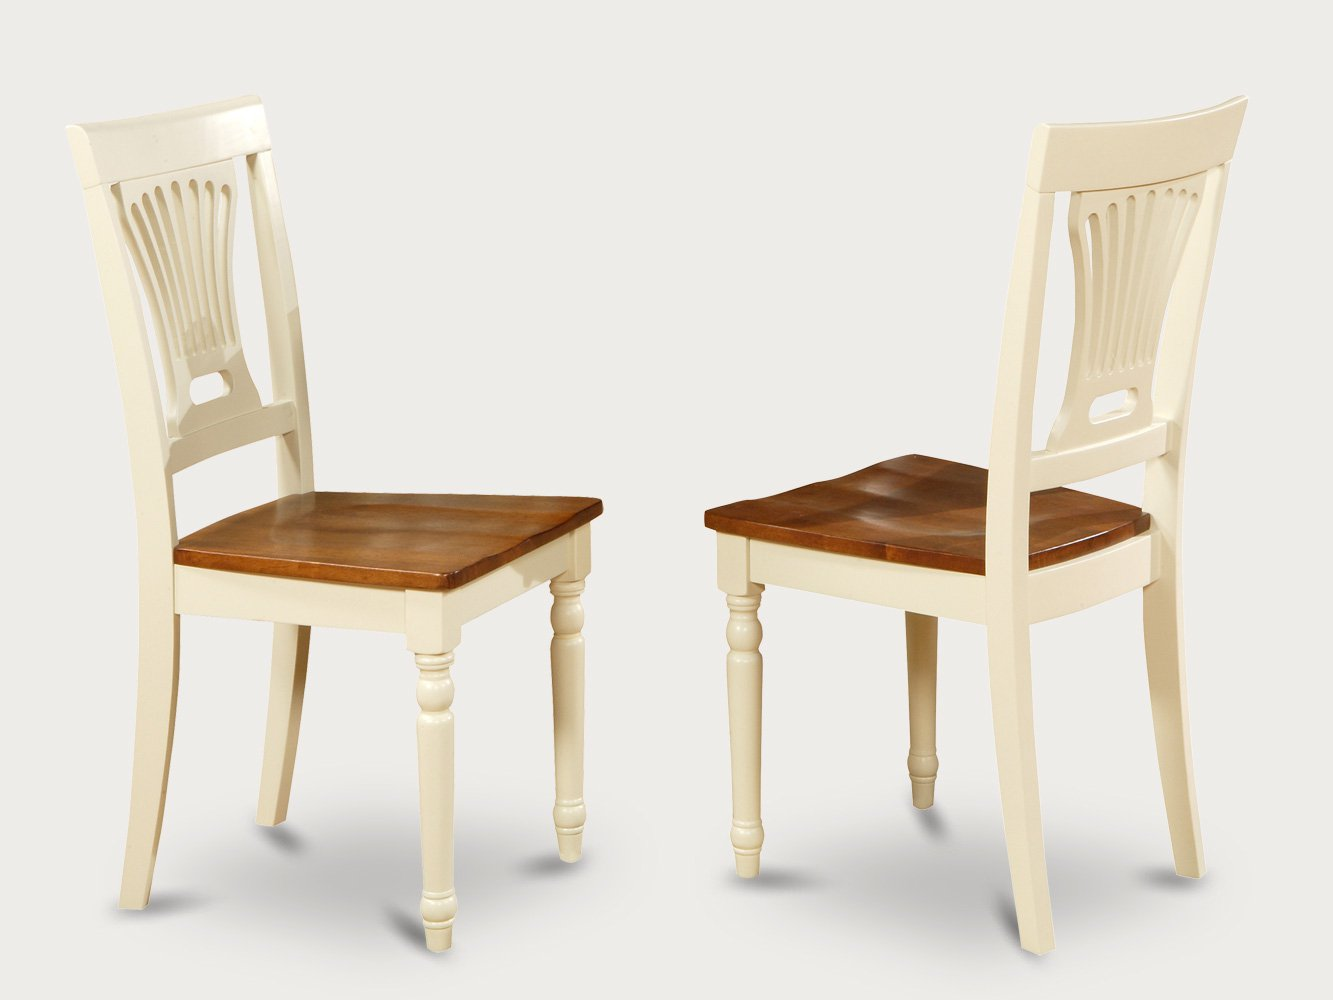 Set of 2 Plainville dining room chairs with wood or cushion seat in buttermilk finish.